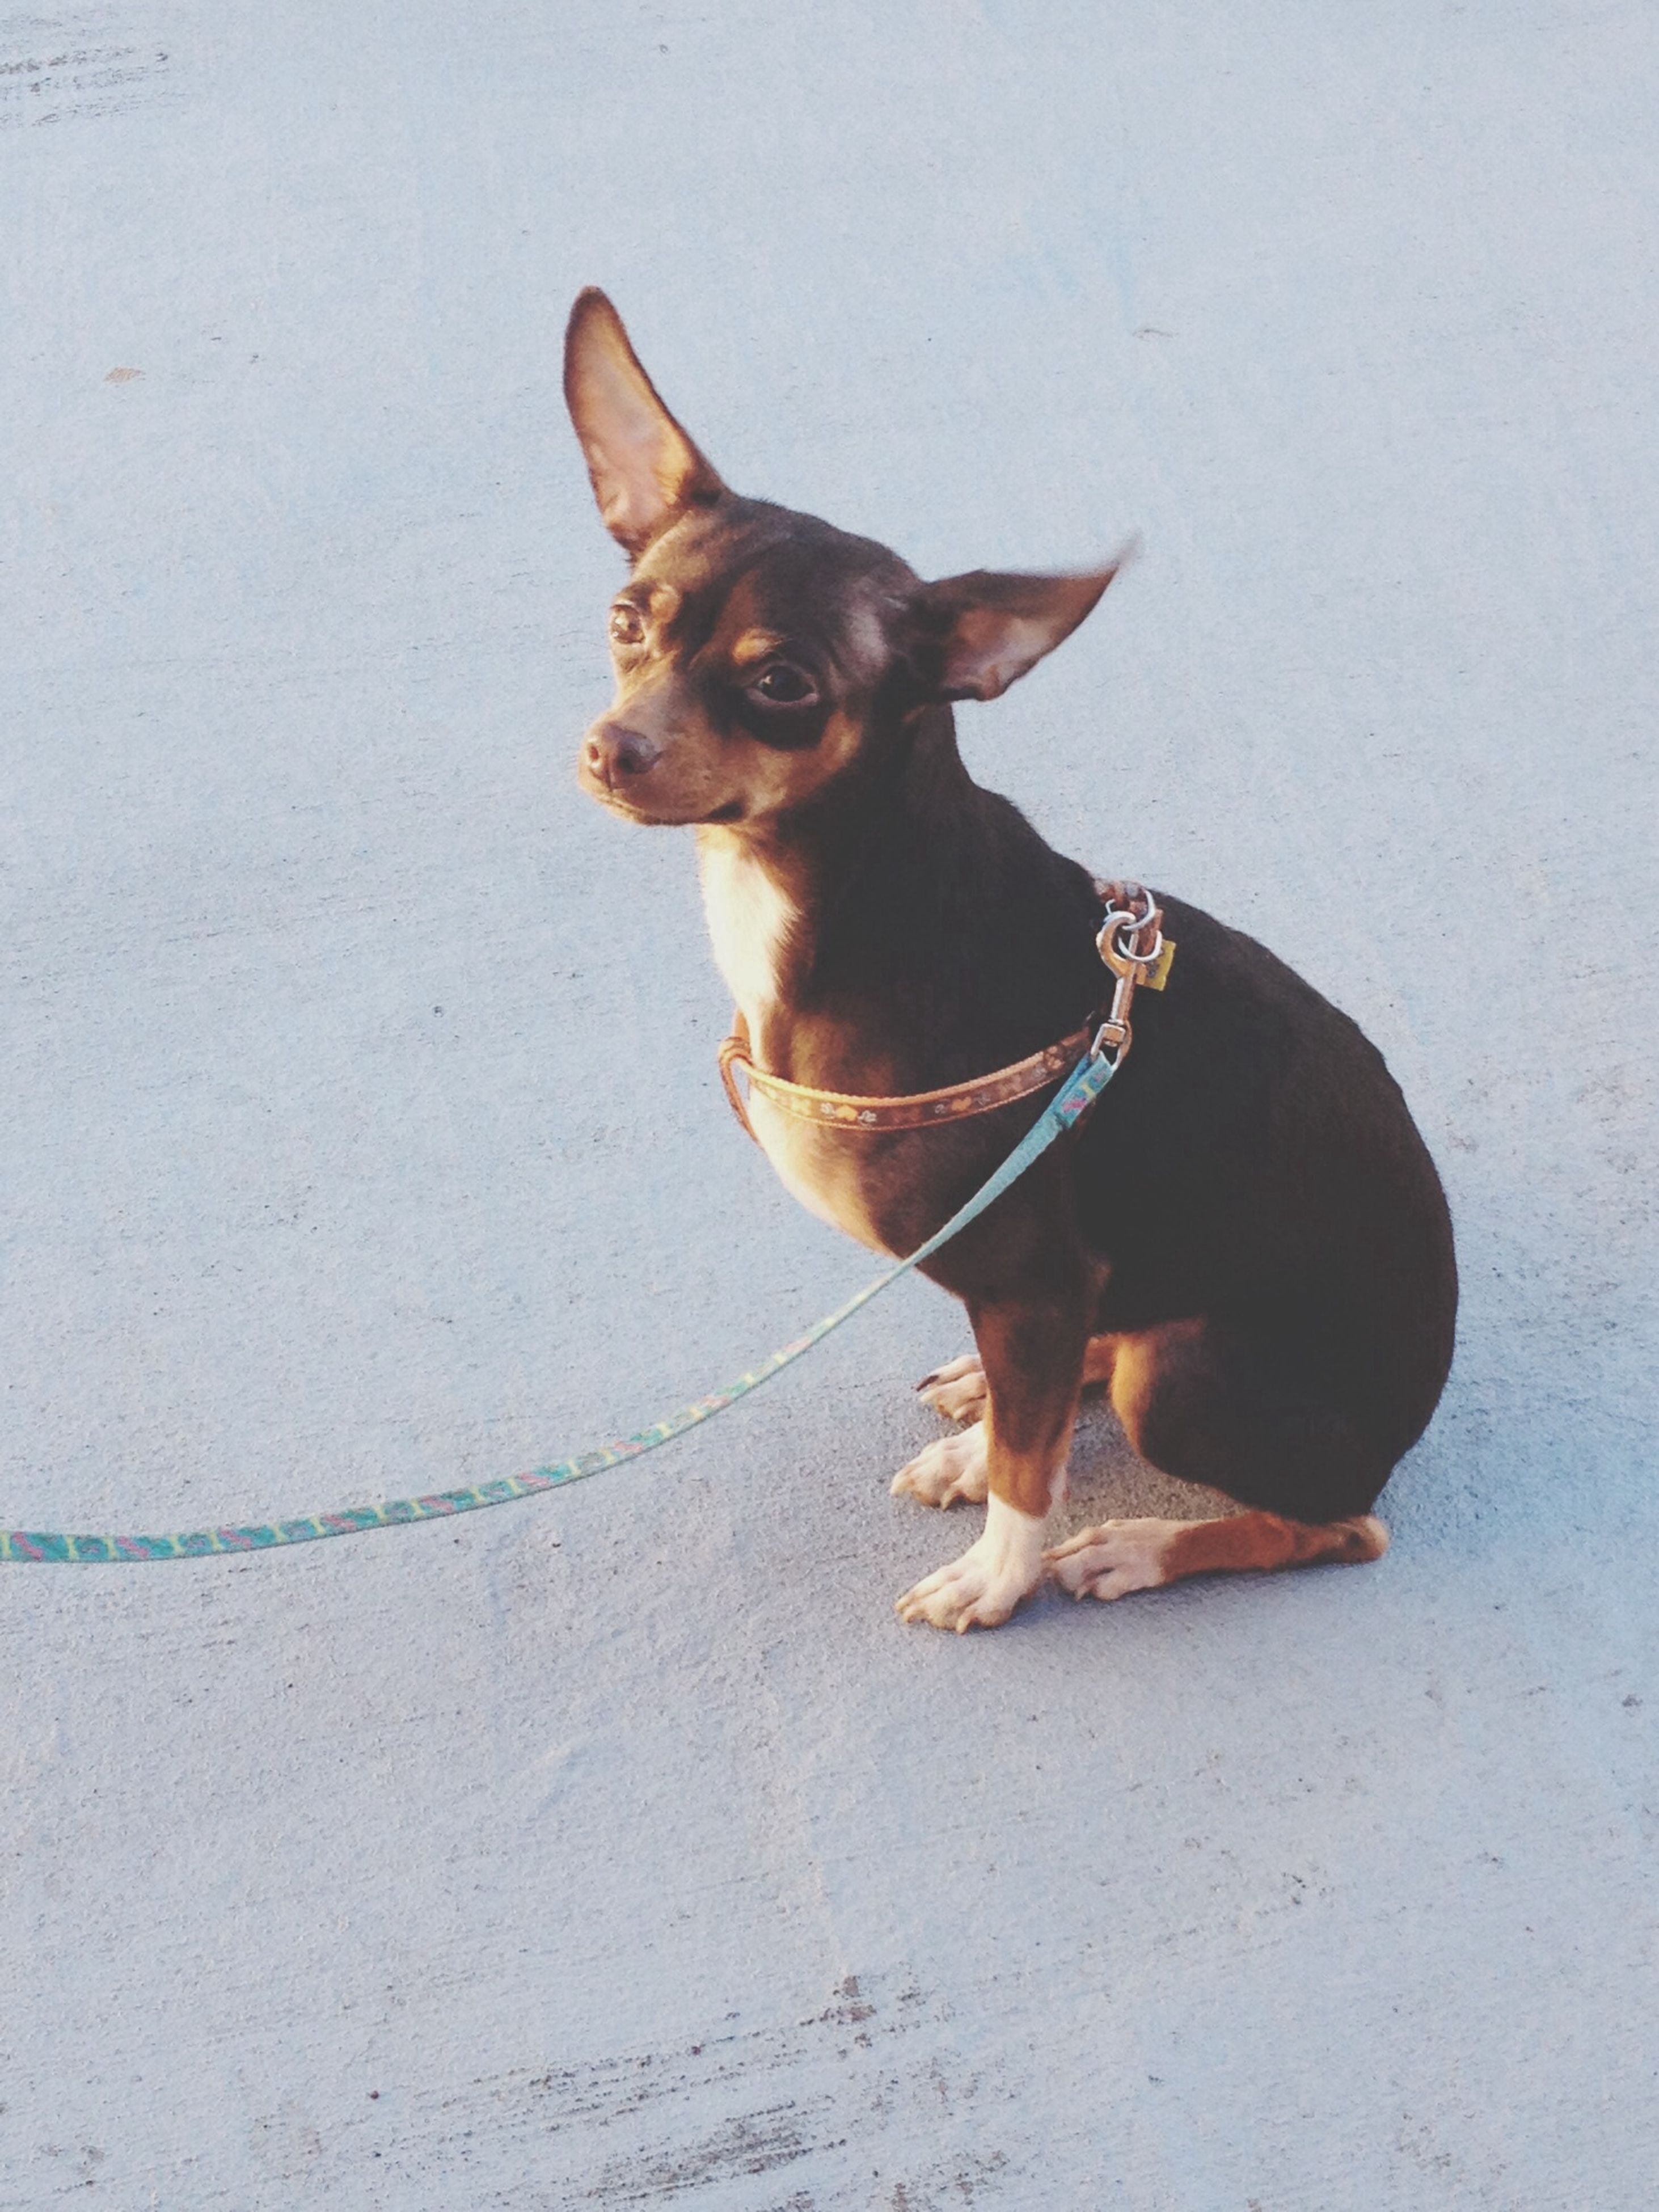 pets, domestic animals, one animal, animal themes, dog, mammal, full length, pet collar, looking at camera, sitting, portrait, pet leash, standing, no people, street, zoology, animal, outdoors, black color